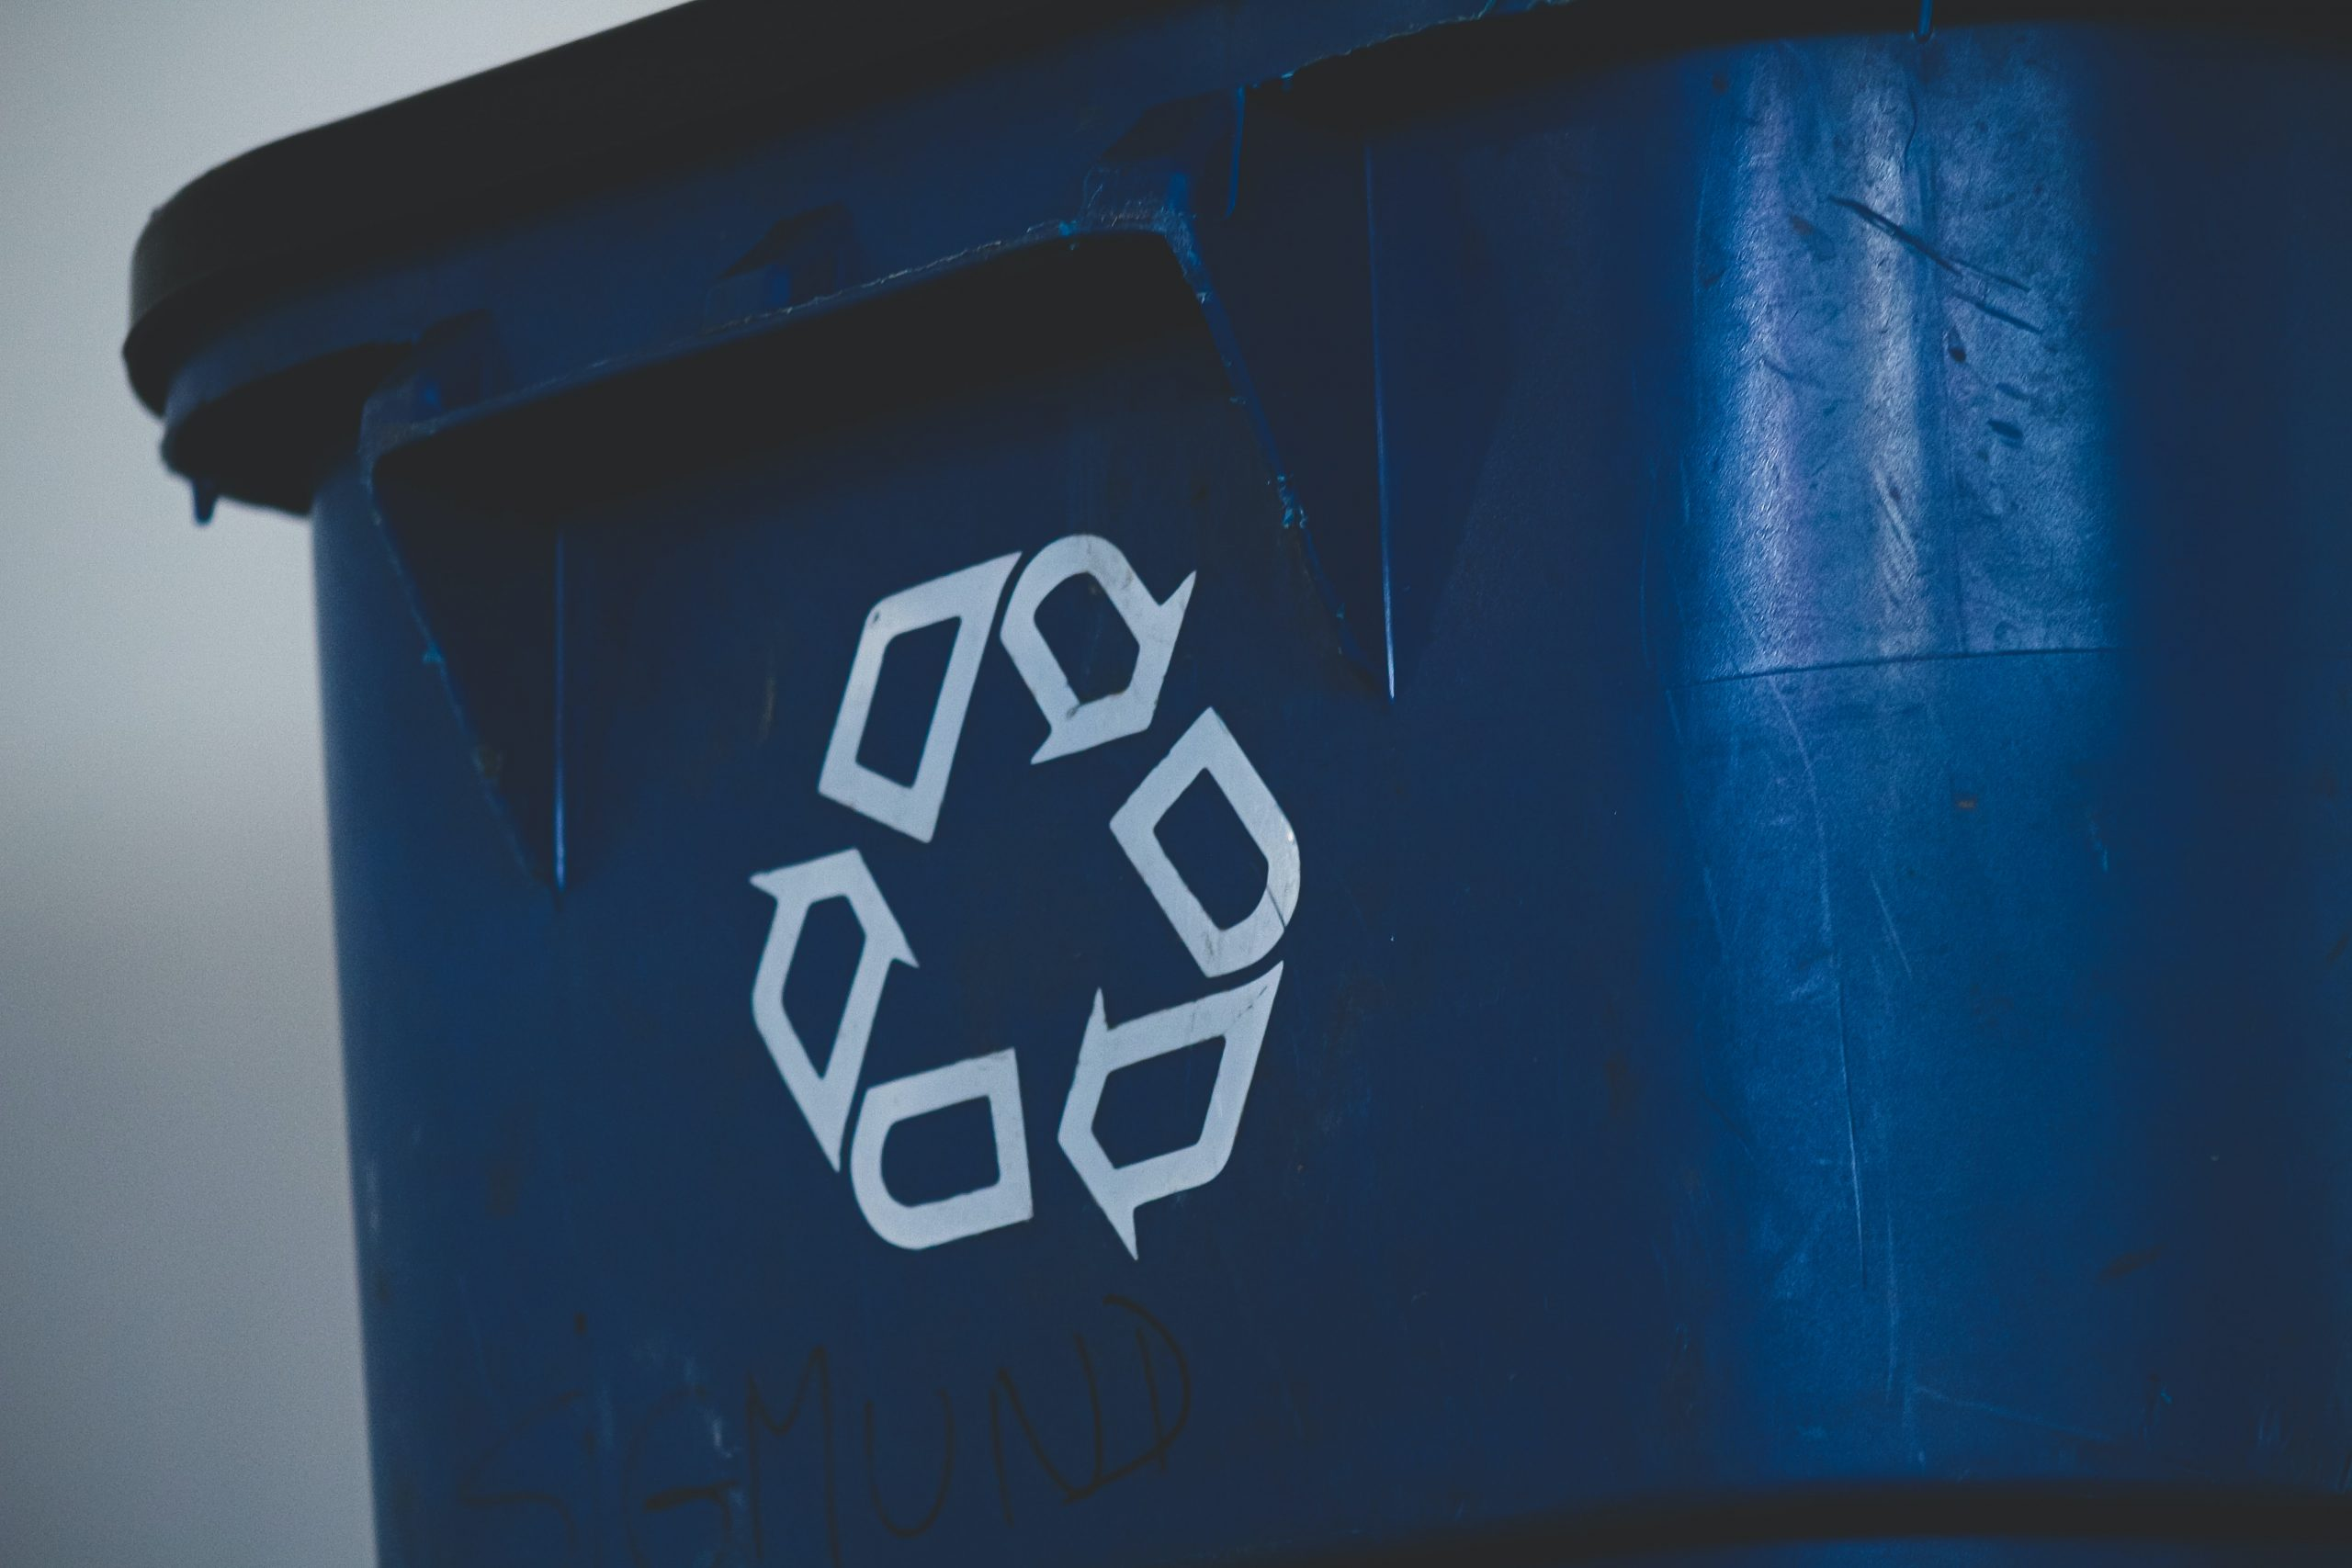 Recycle - trashcan